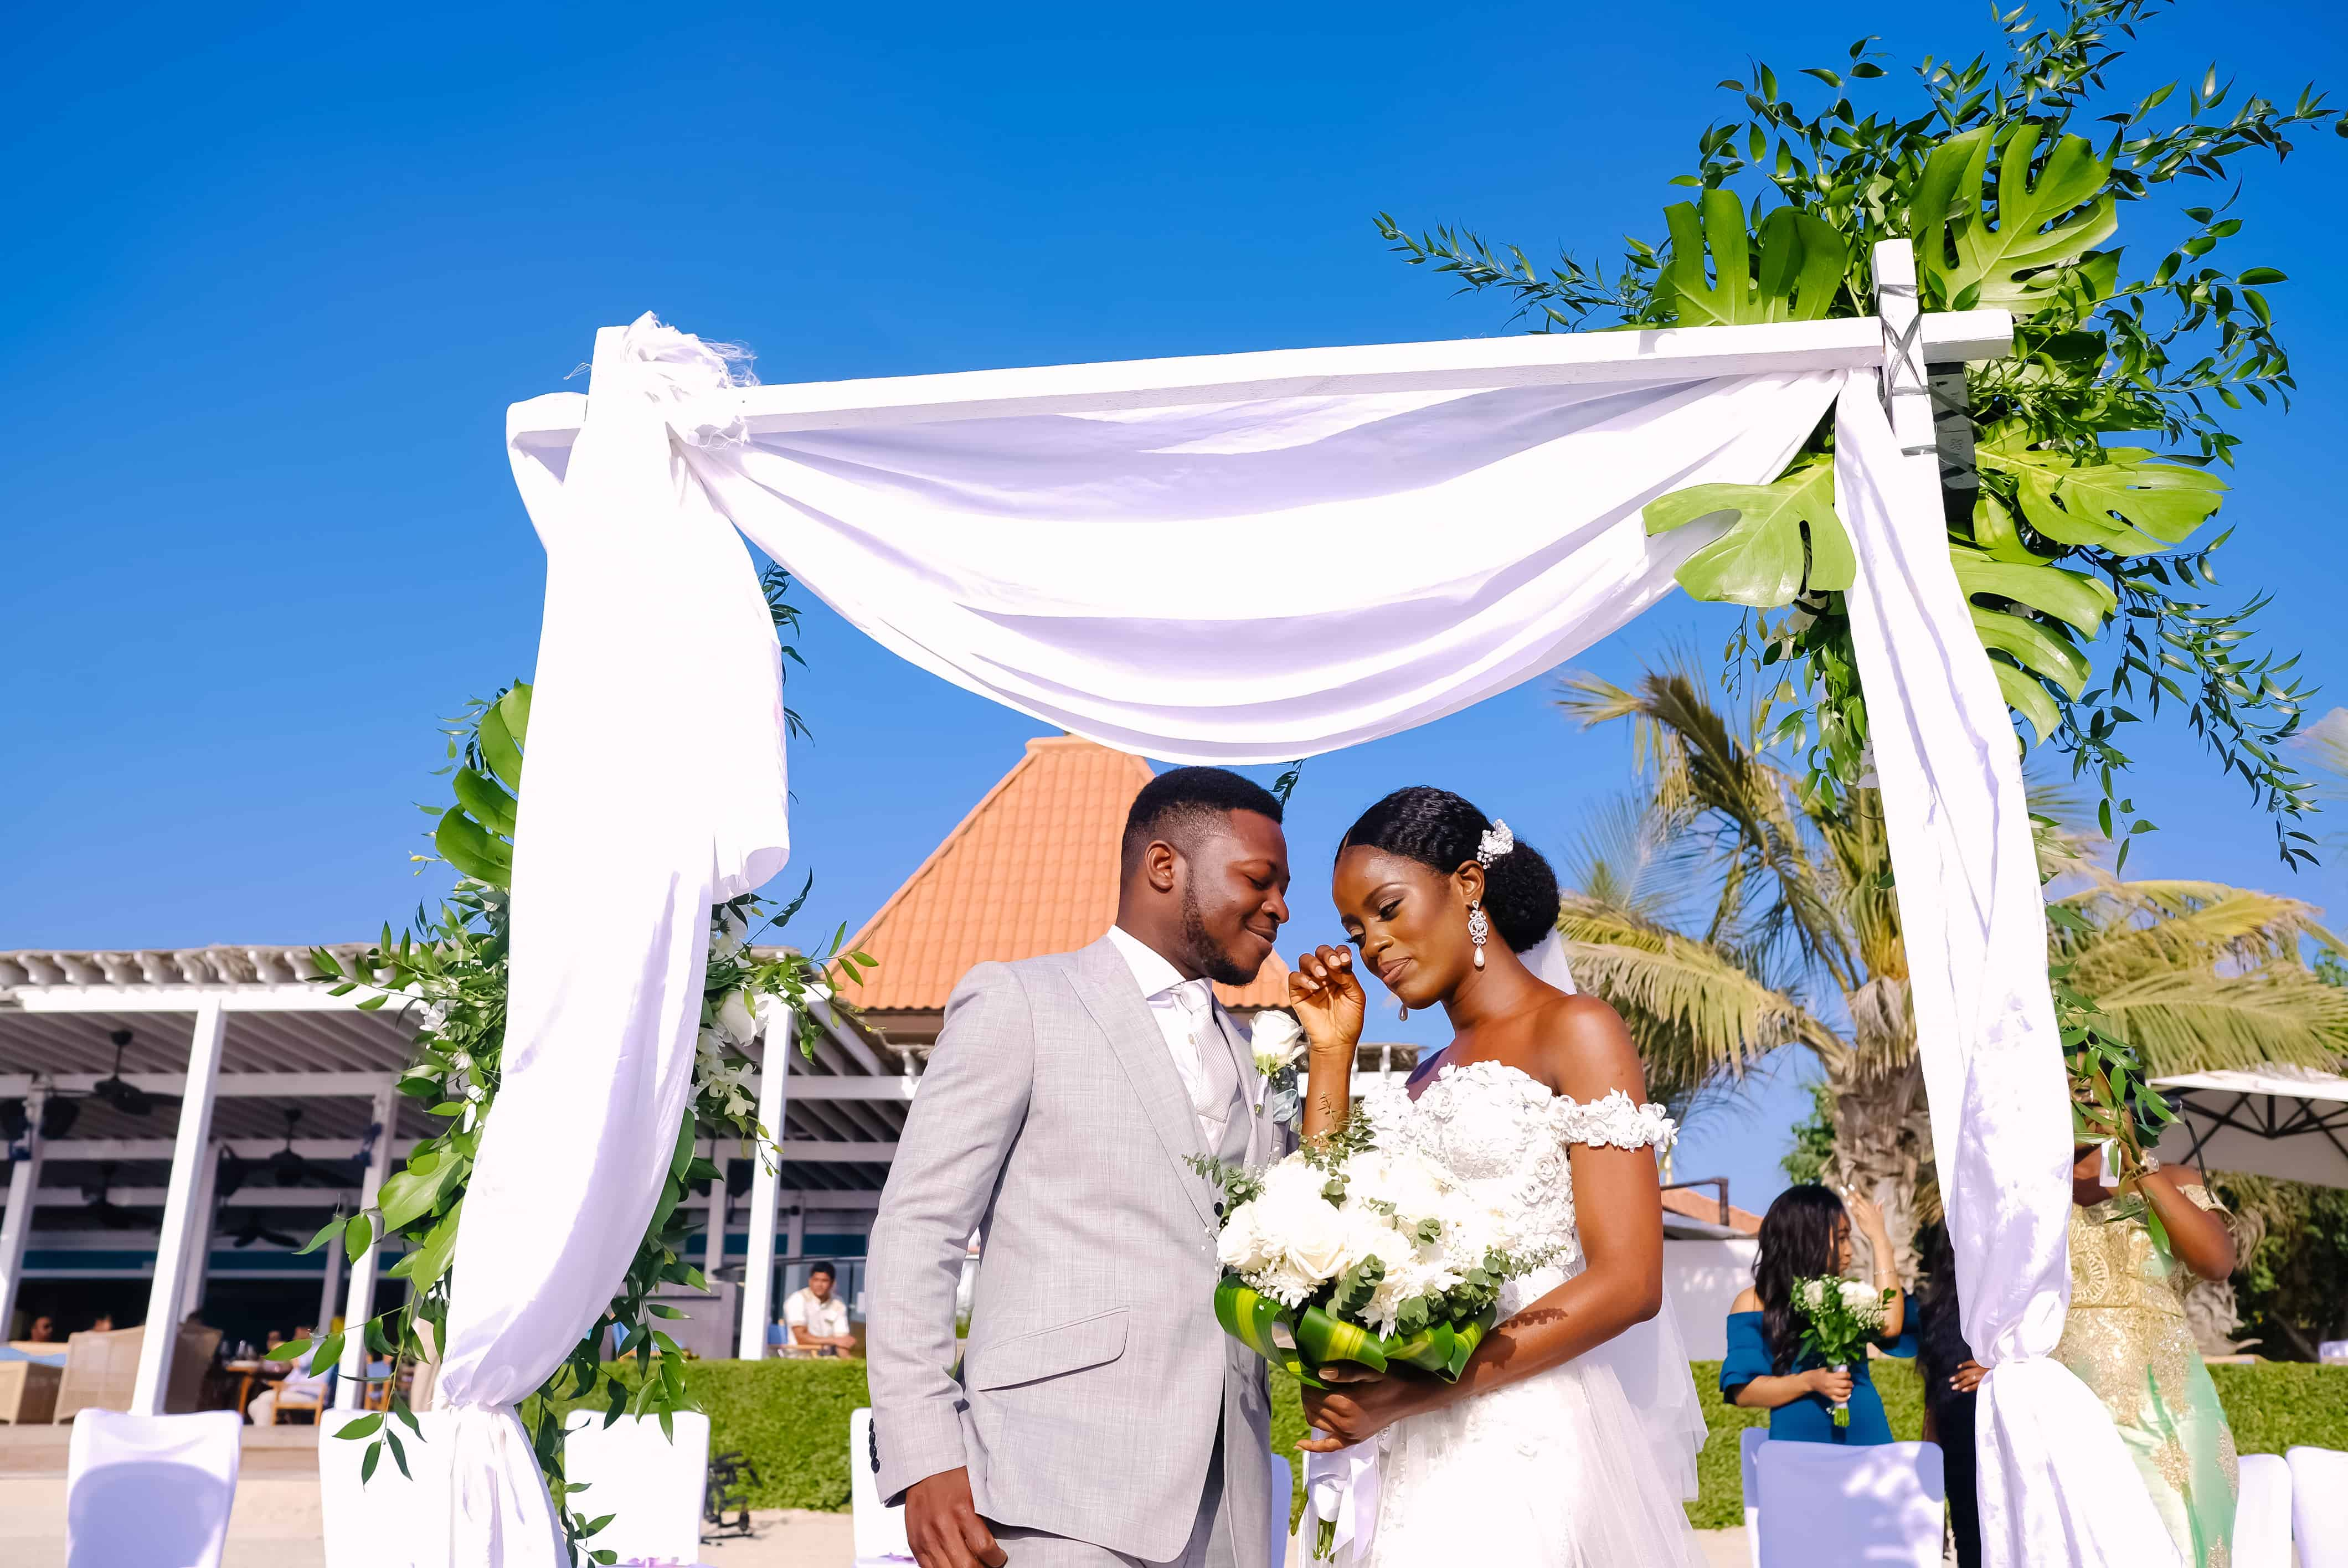 Here is how you can save money on your destination wedding in Dubai